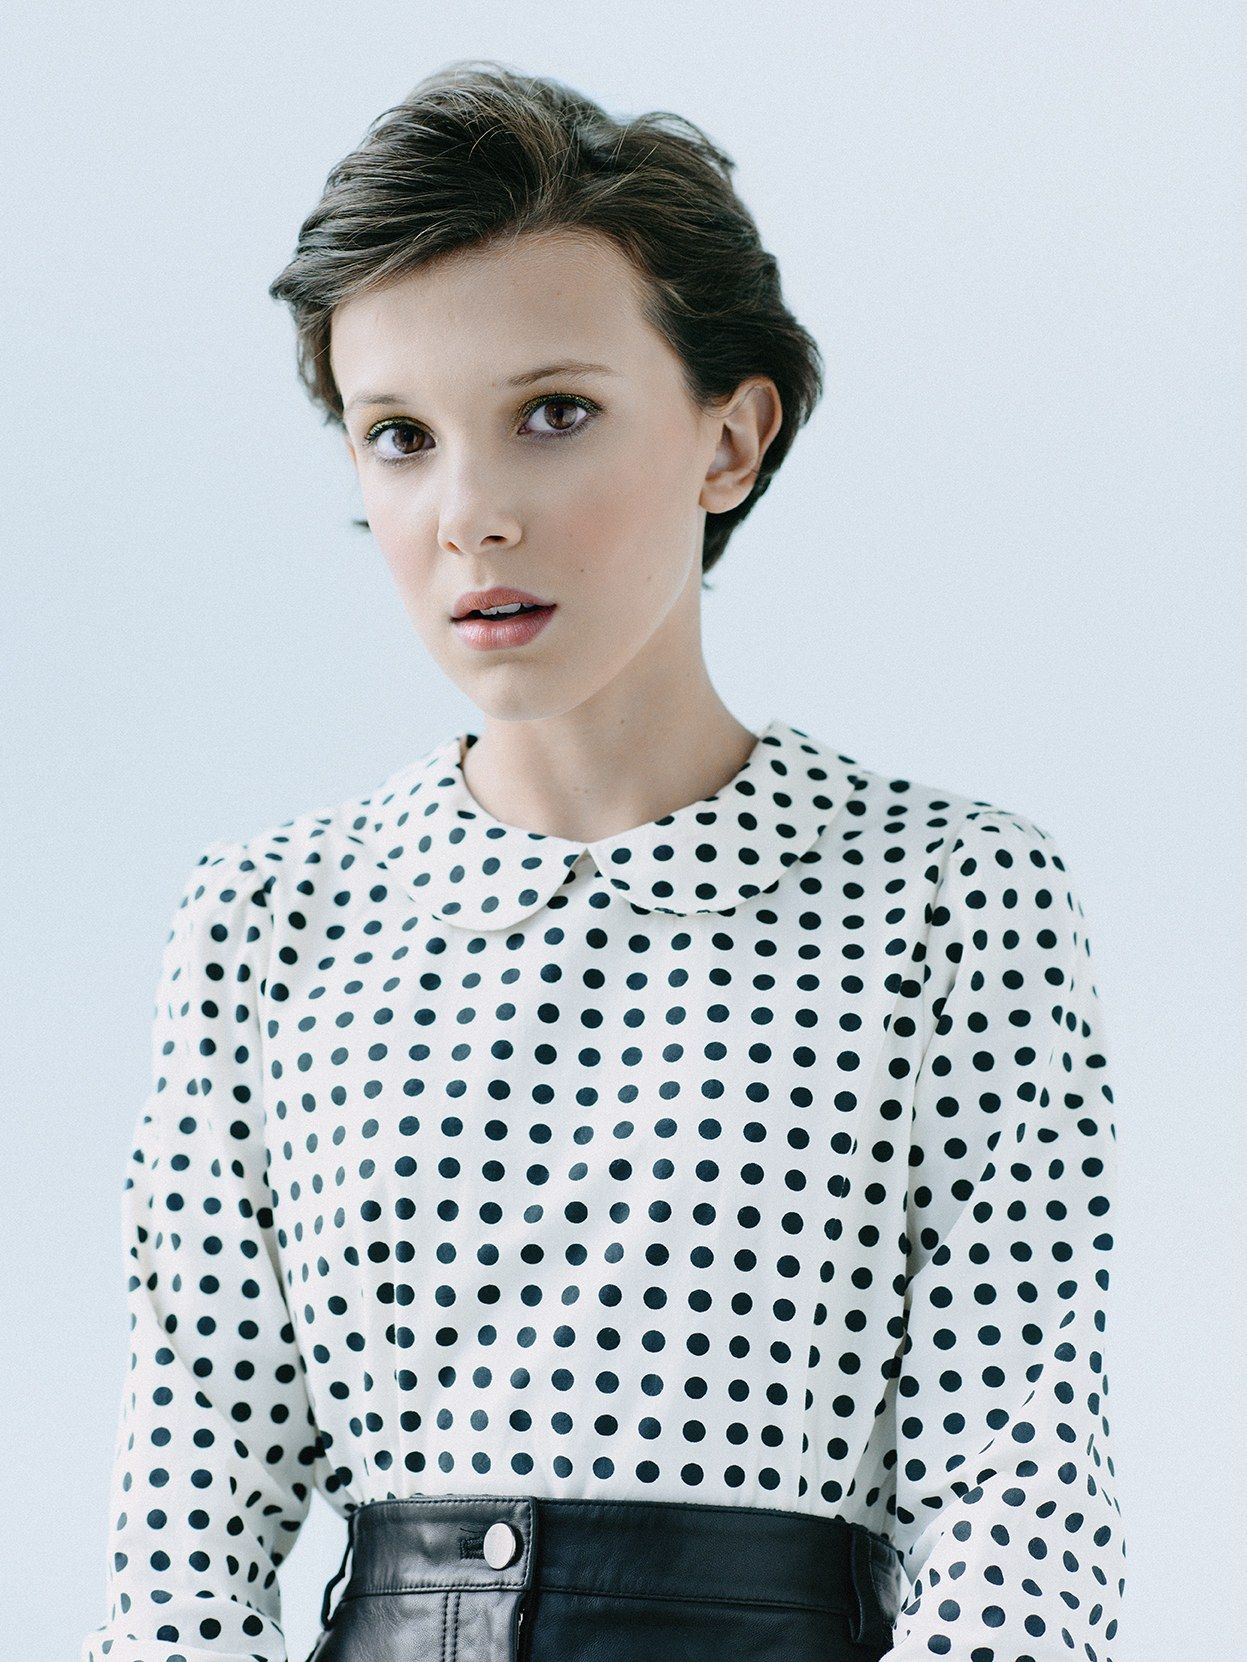 MILLIE IS SO PRETTY!